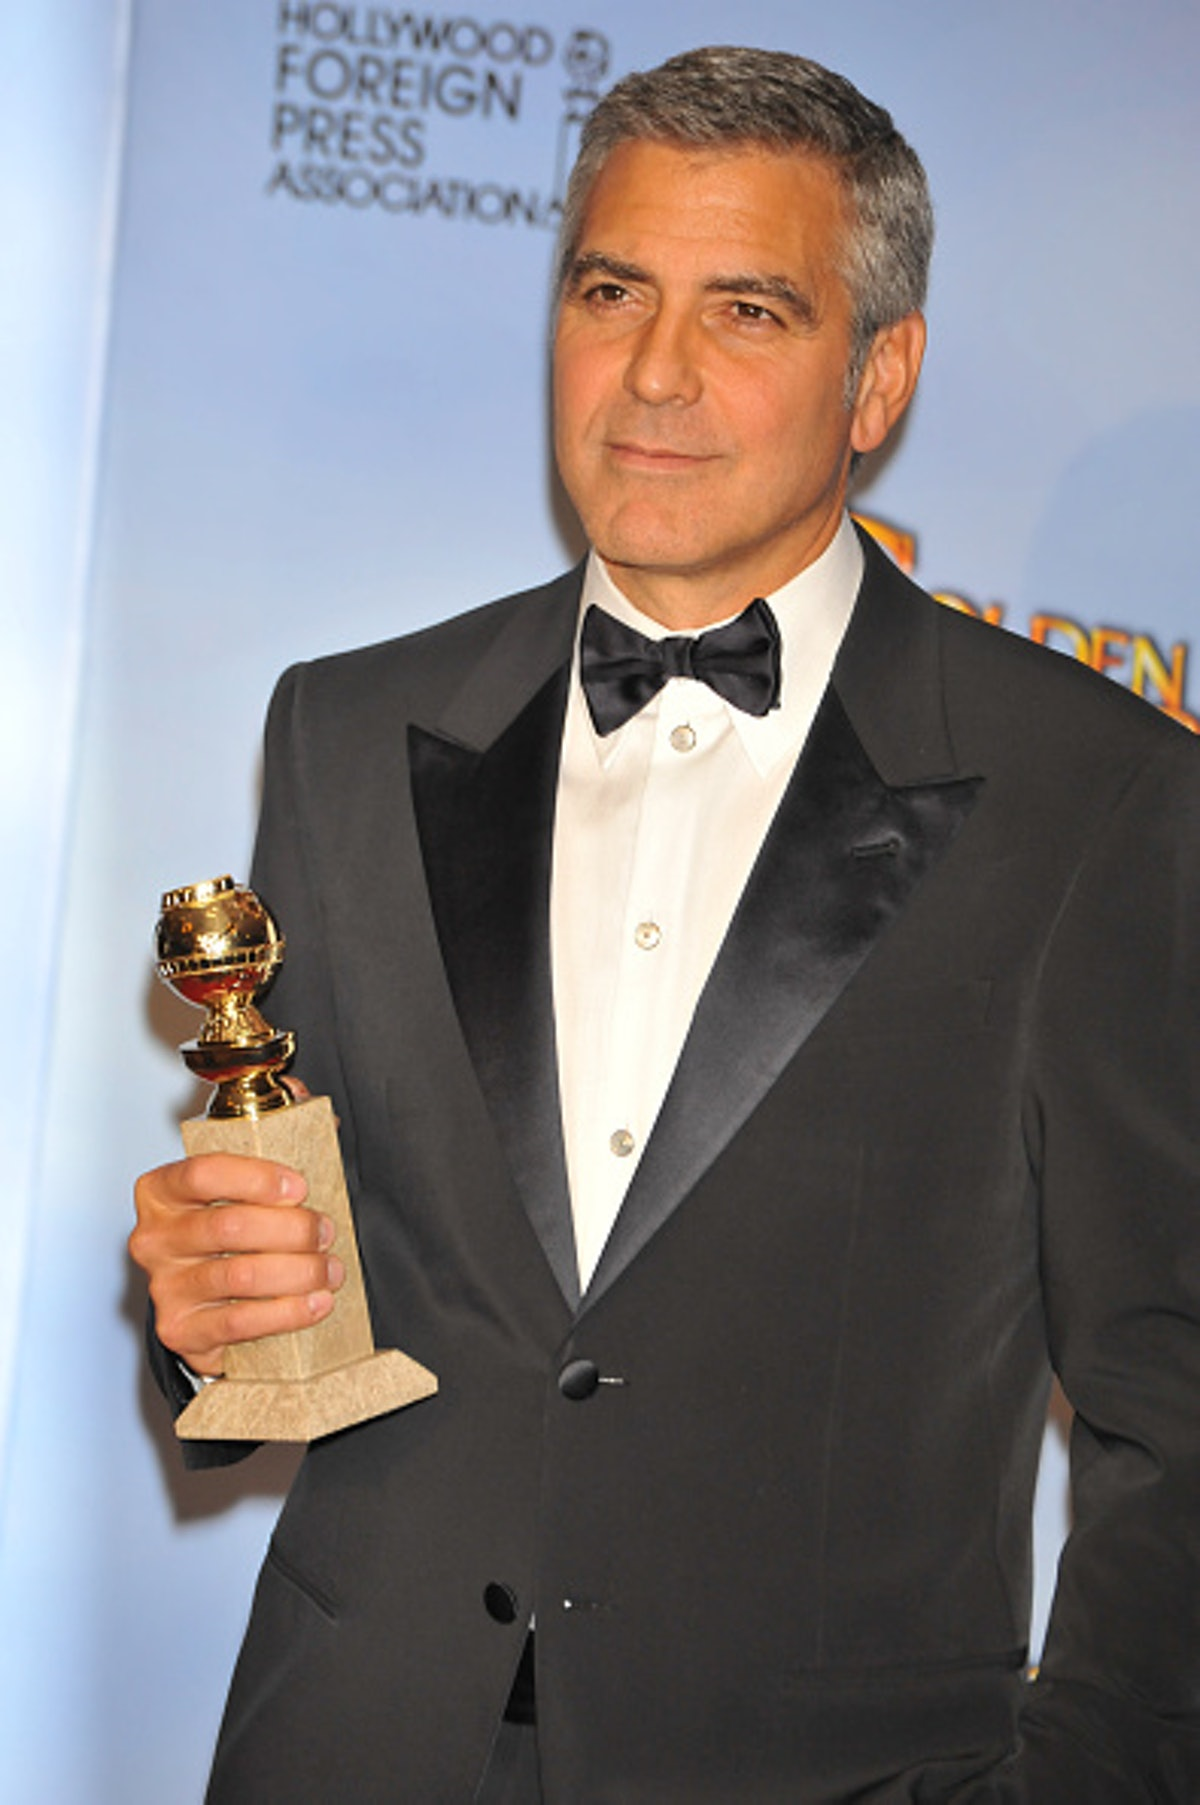 George in a tux holding his Golden Globe